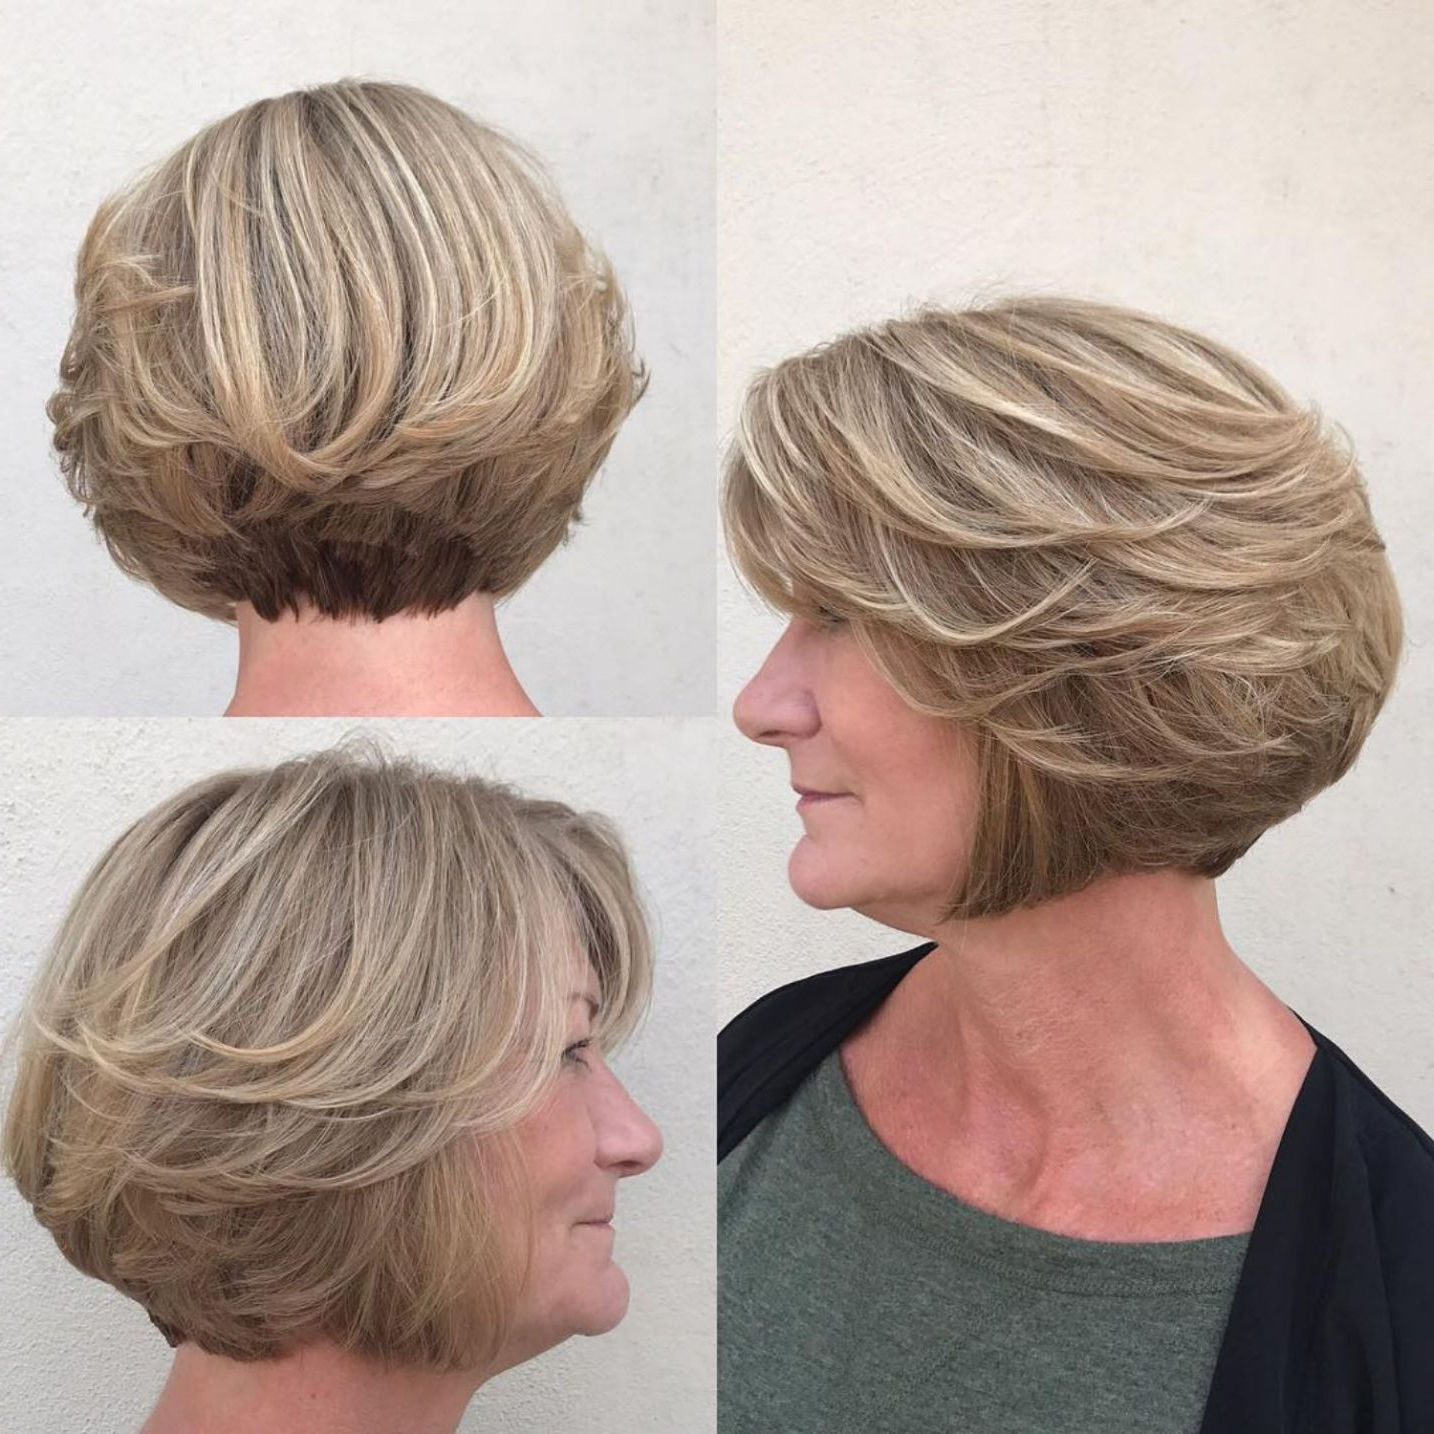 60 Best Hairstyles And Haircuts For Women Over 60 To Suit Any Taste In Ash Blonde Bob Hairstyles With Feathered Layers (View 13 of 20)